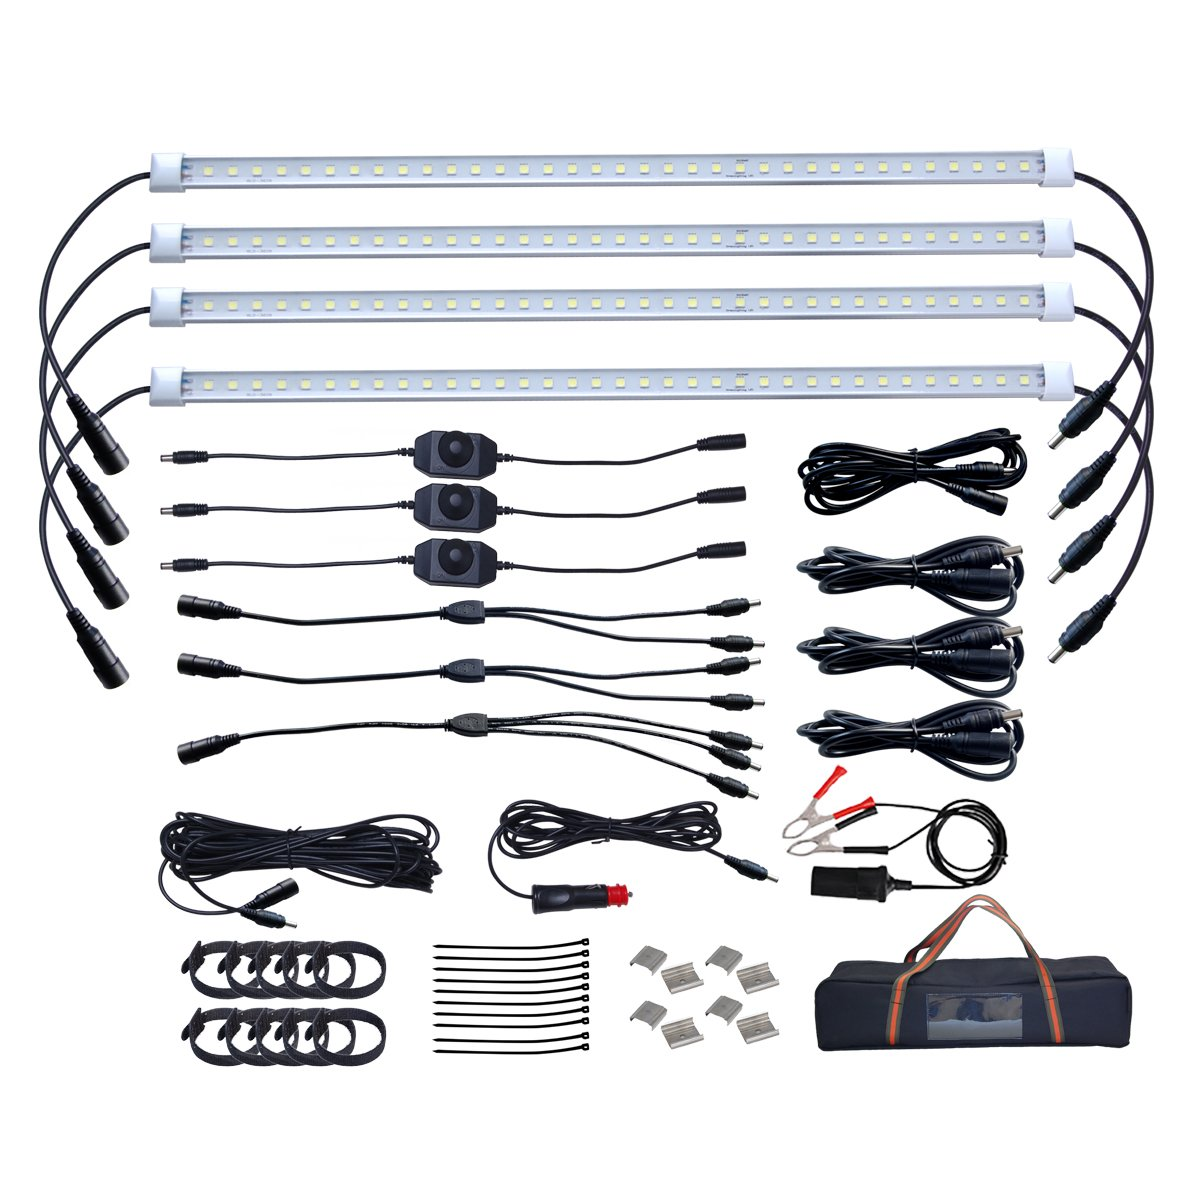 Dream Lighting Dimmable Led Strip Camping Lights Kit Waterproof 12 Volt Light Wiring Diagram Free Picture Connectable Extendable Four Warm White Bars For Fishing Tent Under Shed